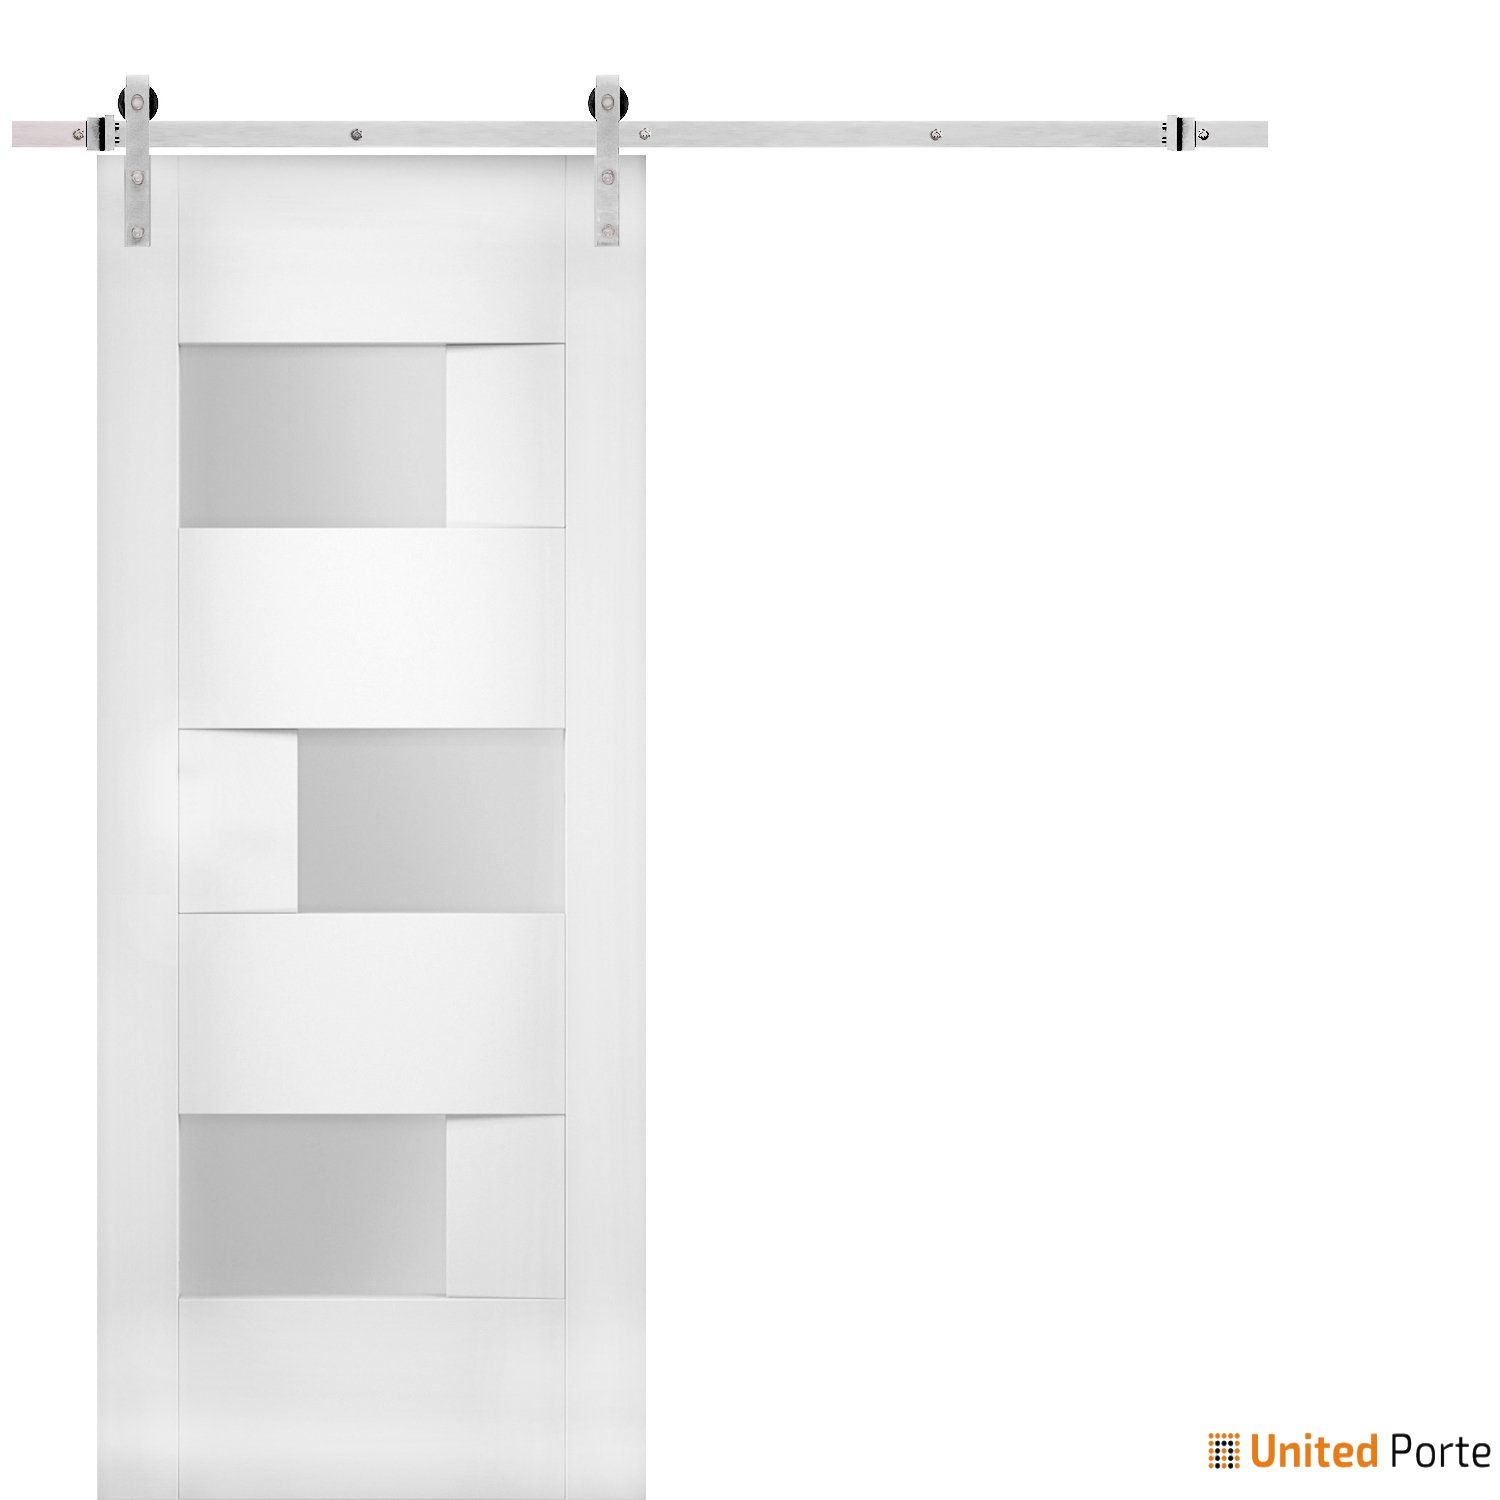 Sete 6933 White Silk Modern Barn Door Opaque Glass with Stainless Hardware   Solid Panel Interior Barn Doors